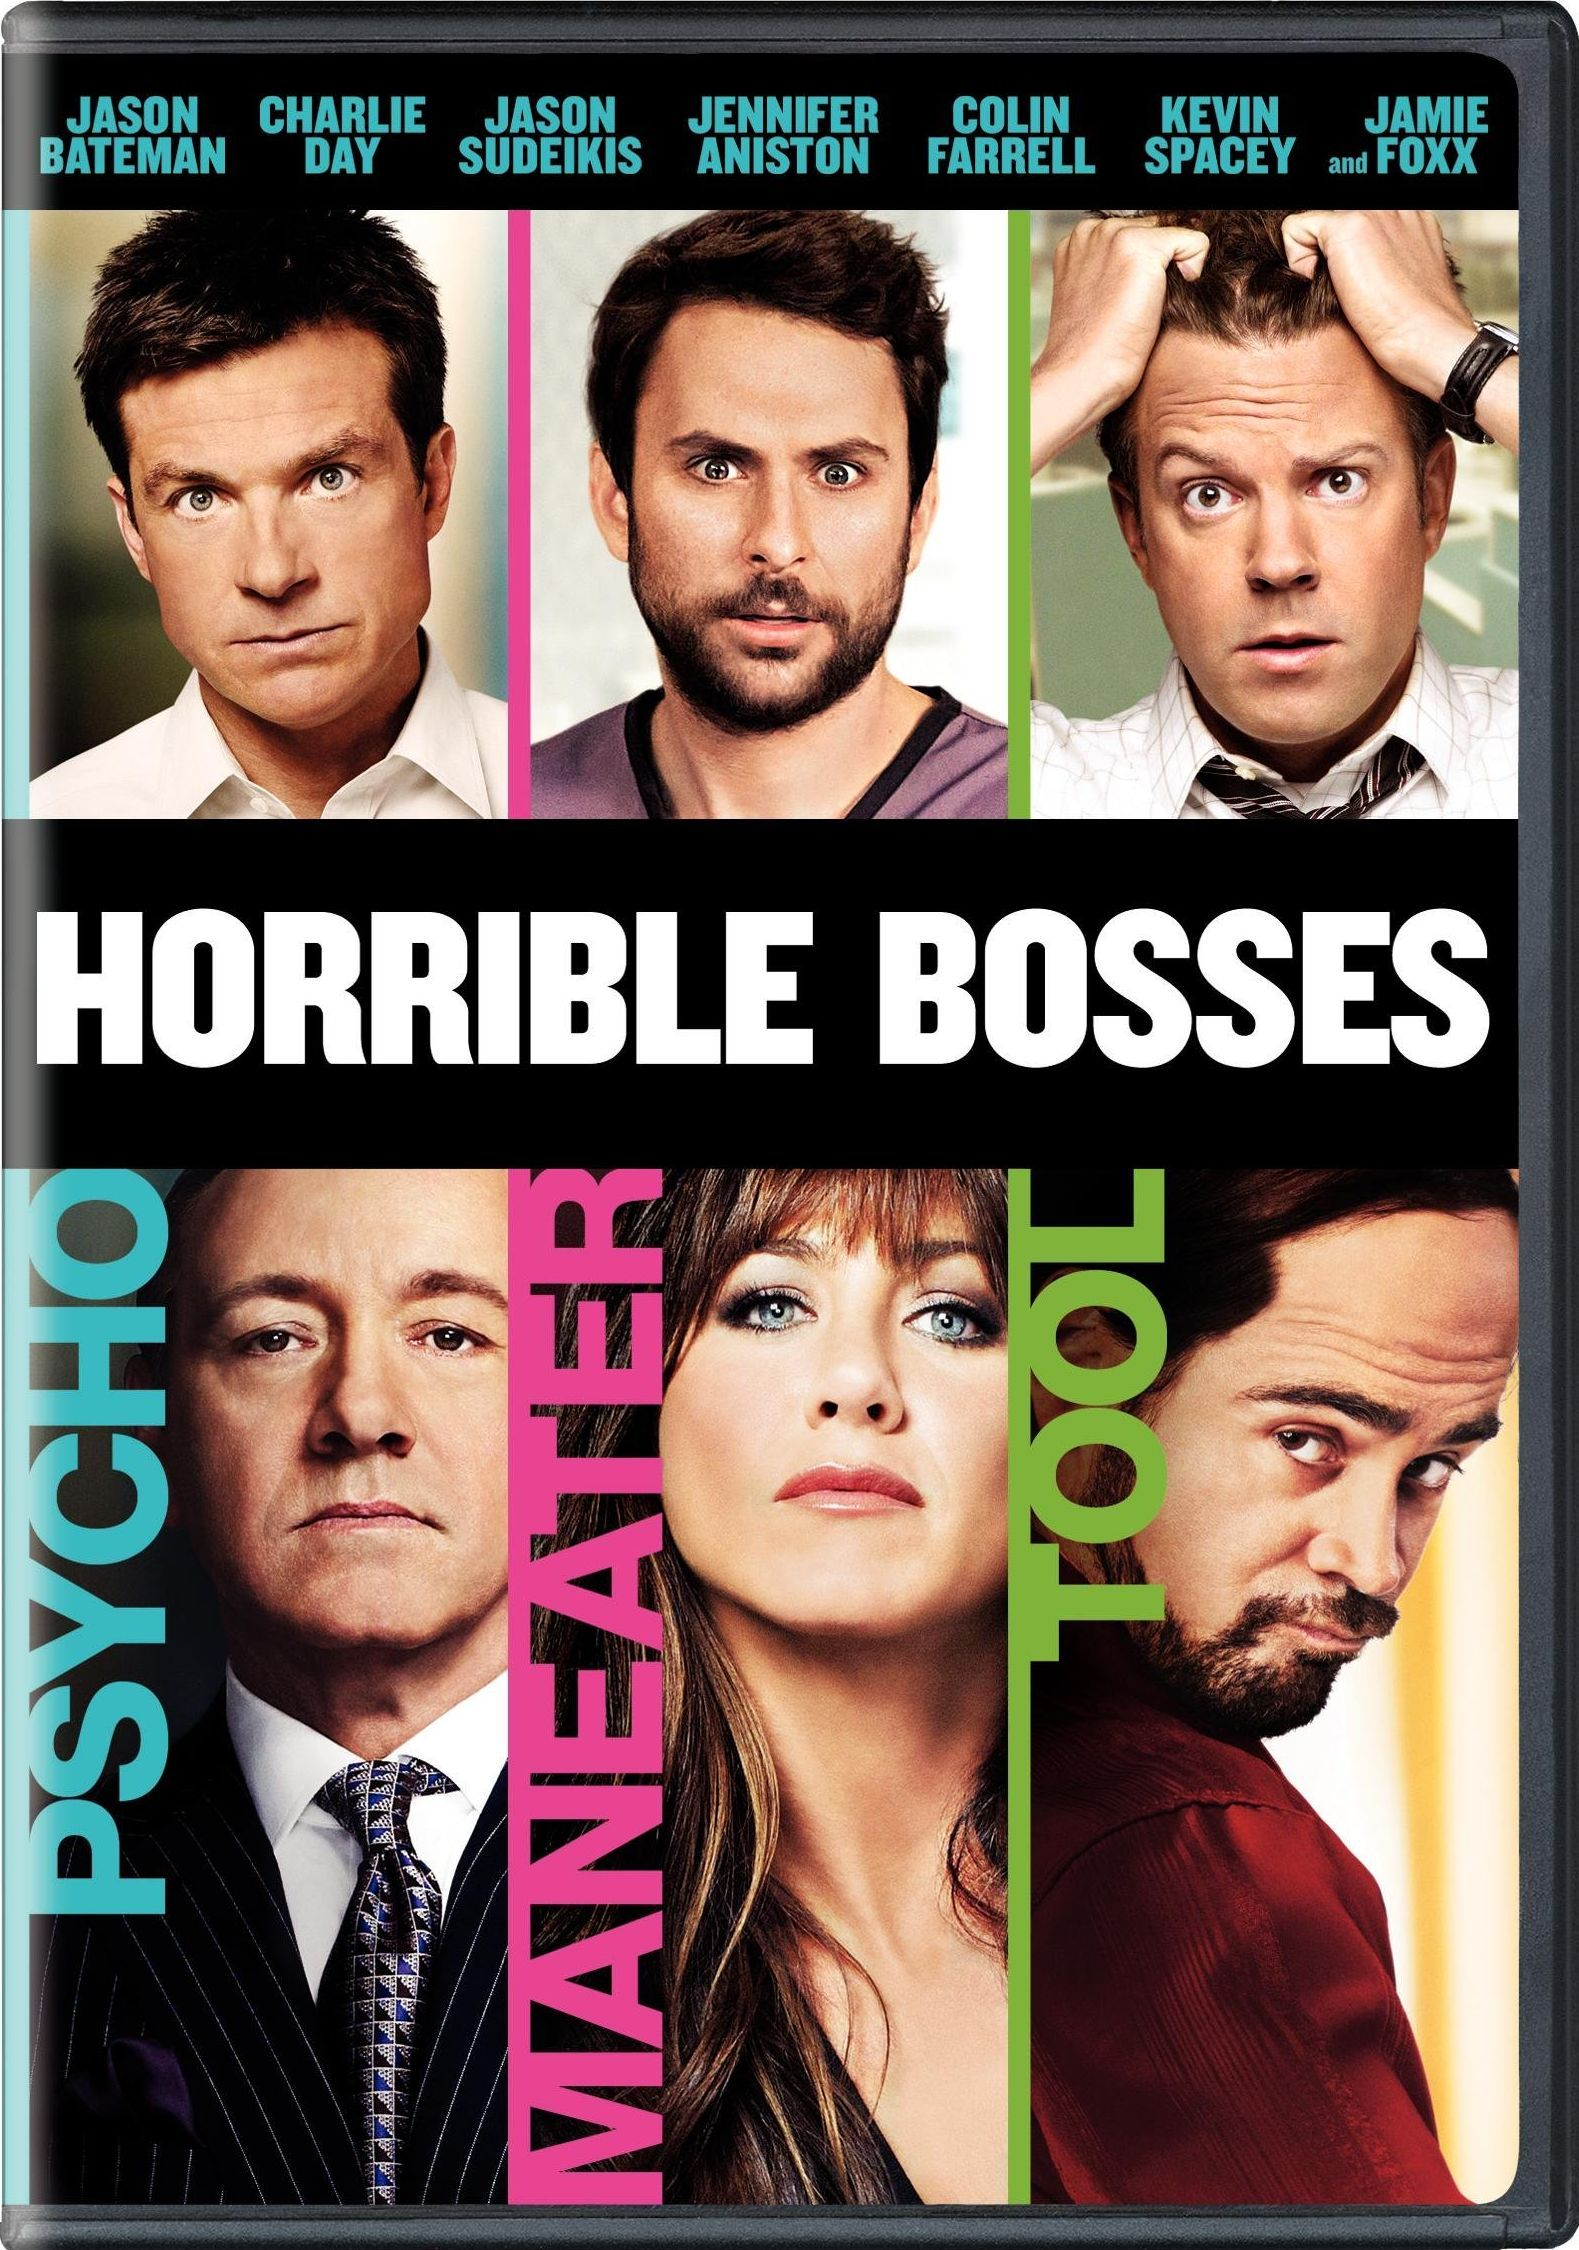 Pin By Janine Blank On Movies I Watched Funny Movies Horrible Bosses Comedy Movies